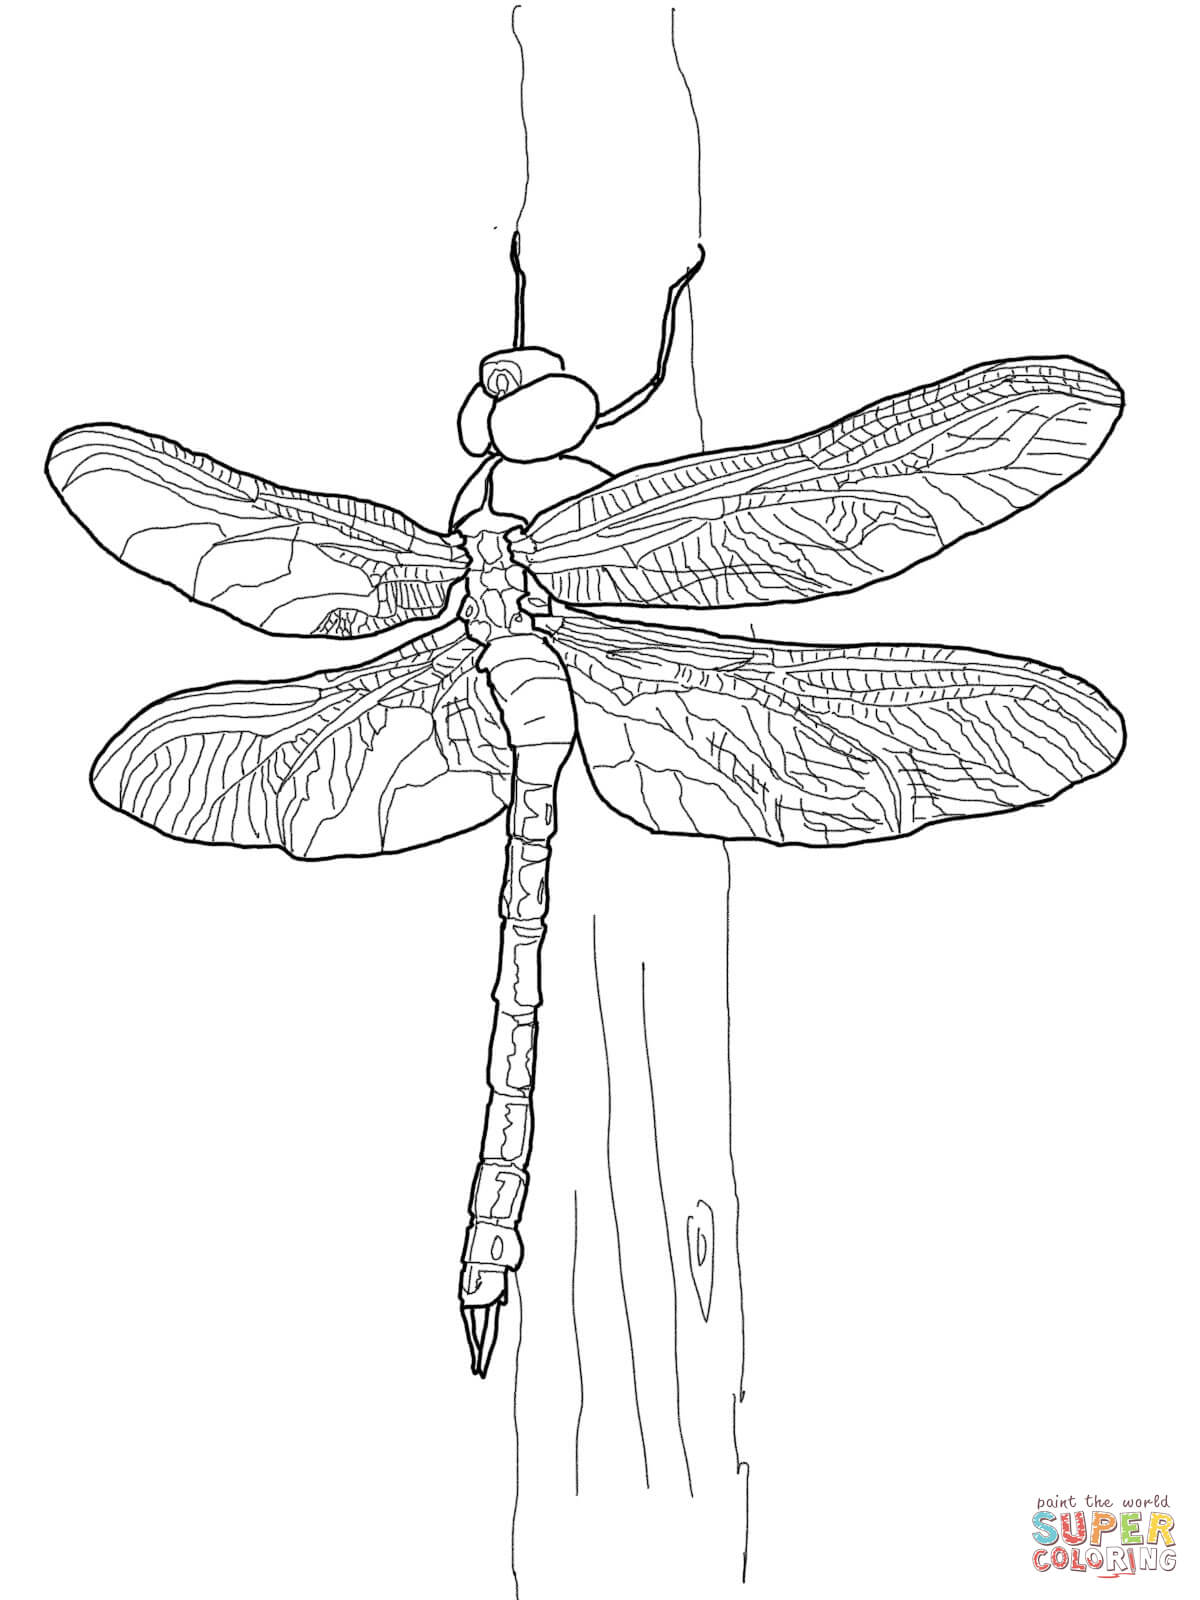 Green Darner Dragonfly Coloring Page